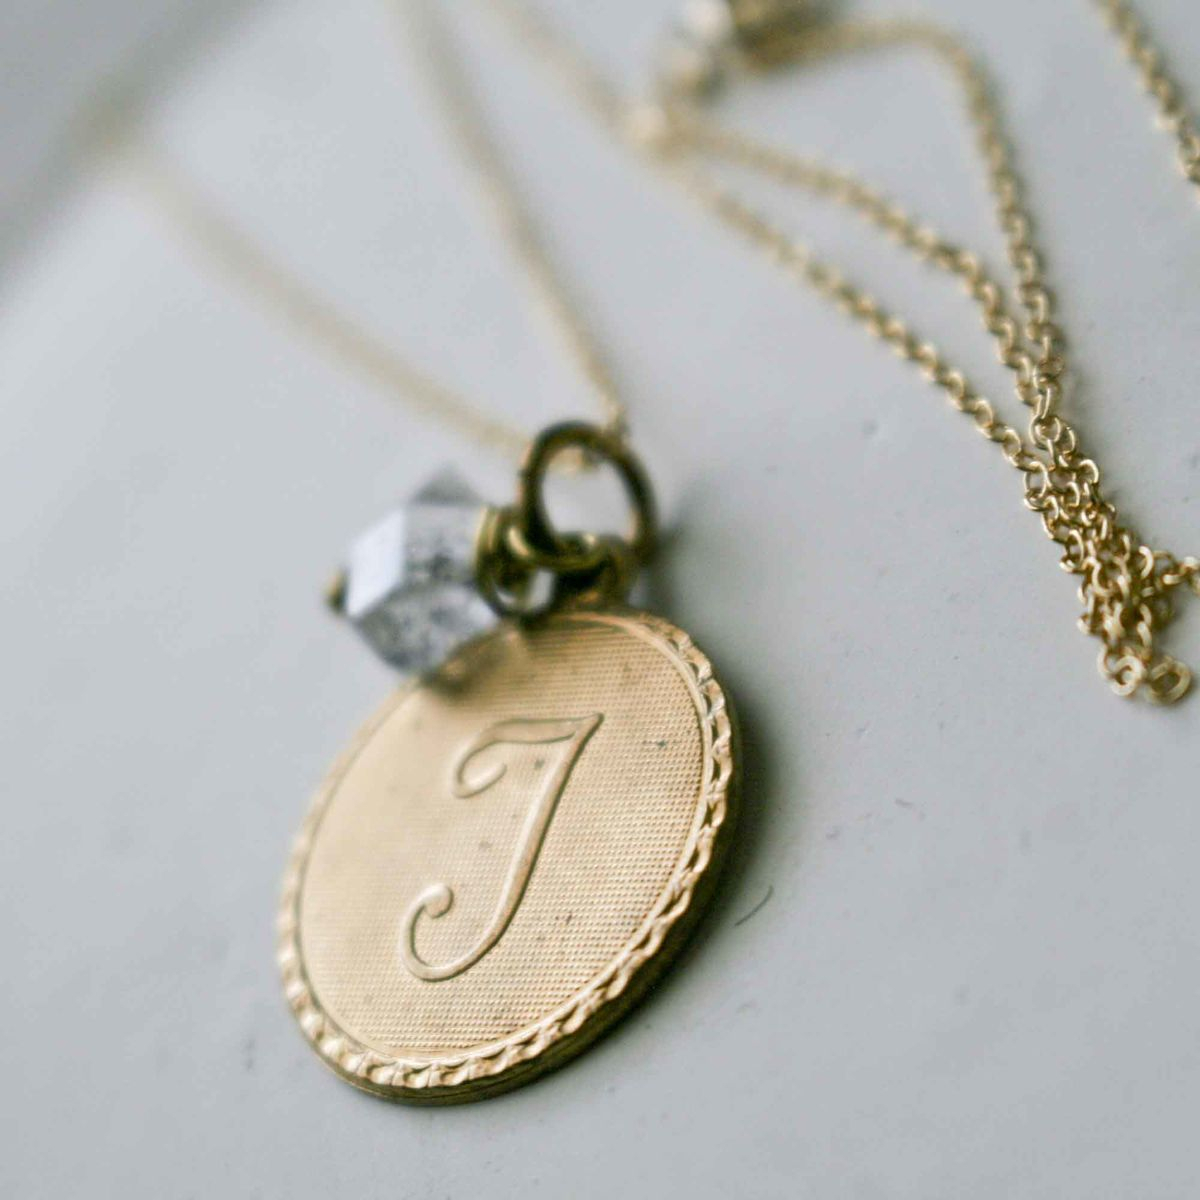 Uppercase Cursive Initial Monogram Letter Round Disc Charm Necklace With Newest Letter J Alphabet Locket Element Necklaces (View 25 of 25)